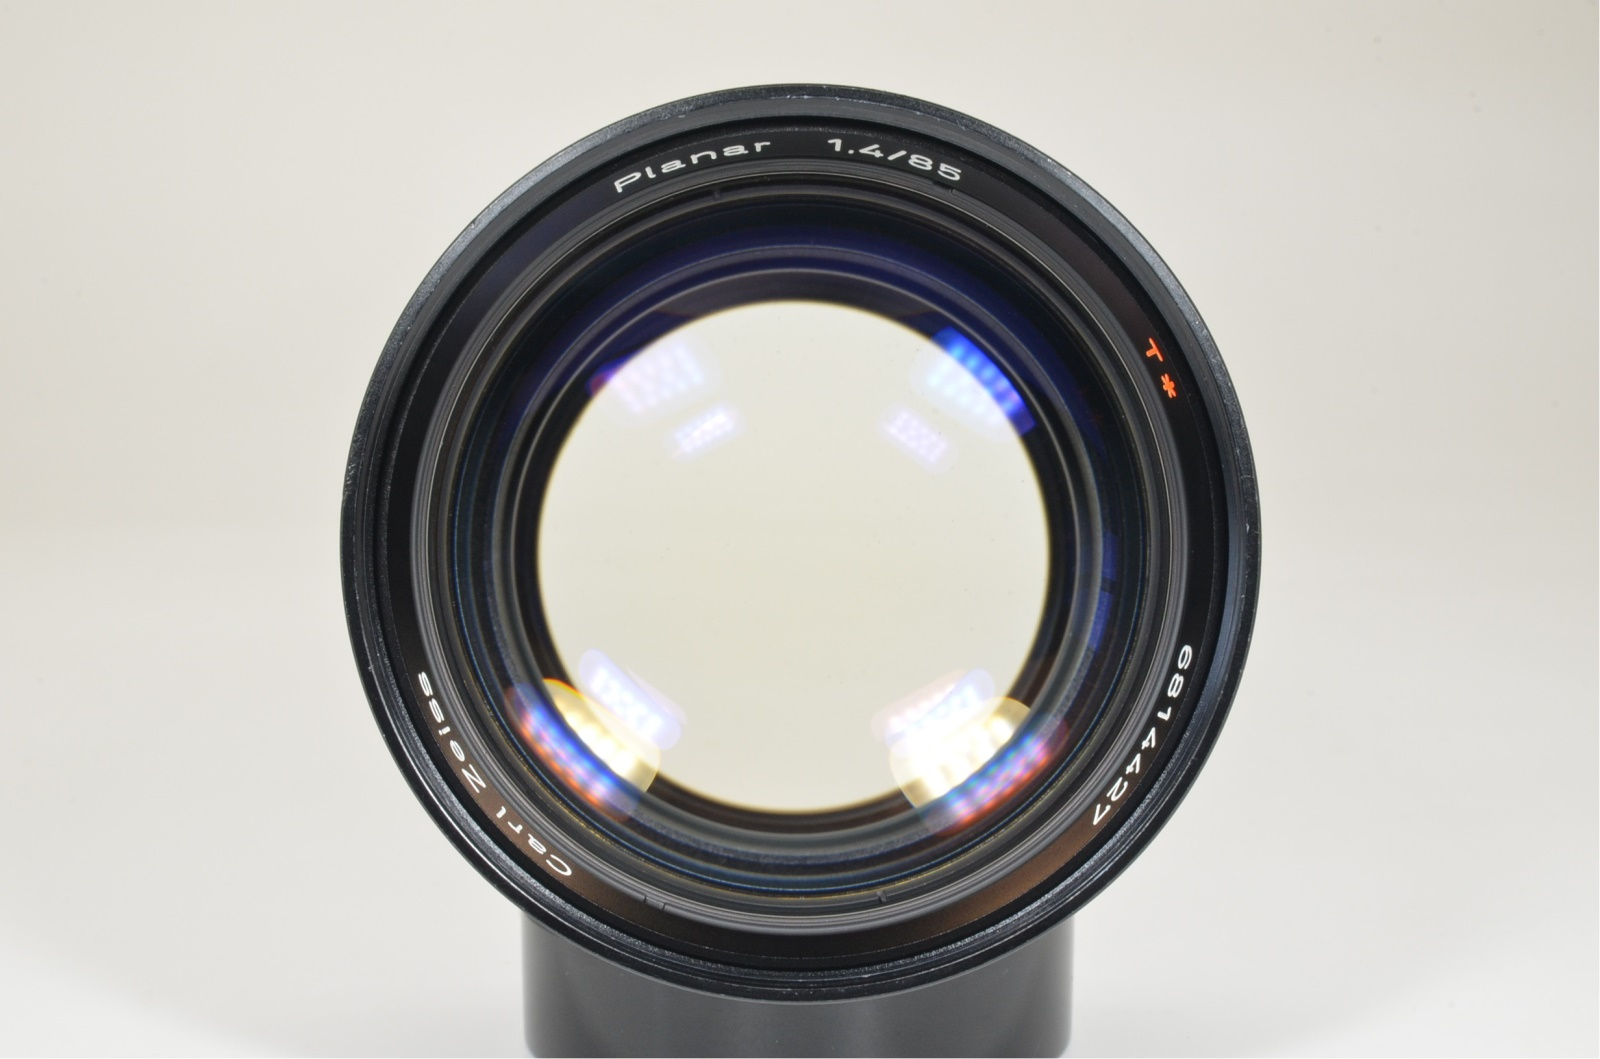 contax carl zeiss planar 85mm f1.4 mmg west germany w/ lens hood shooting tested